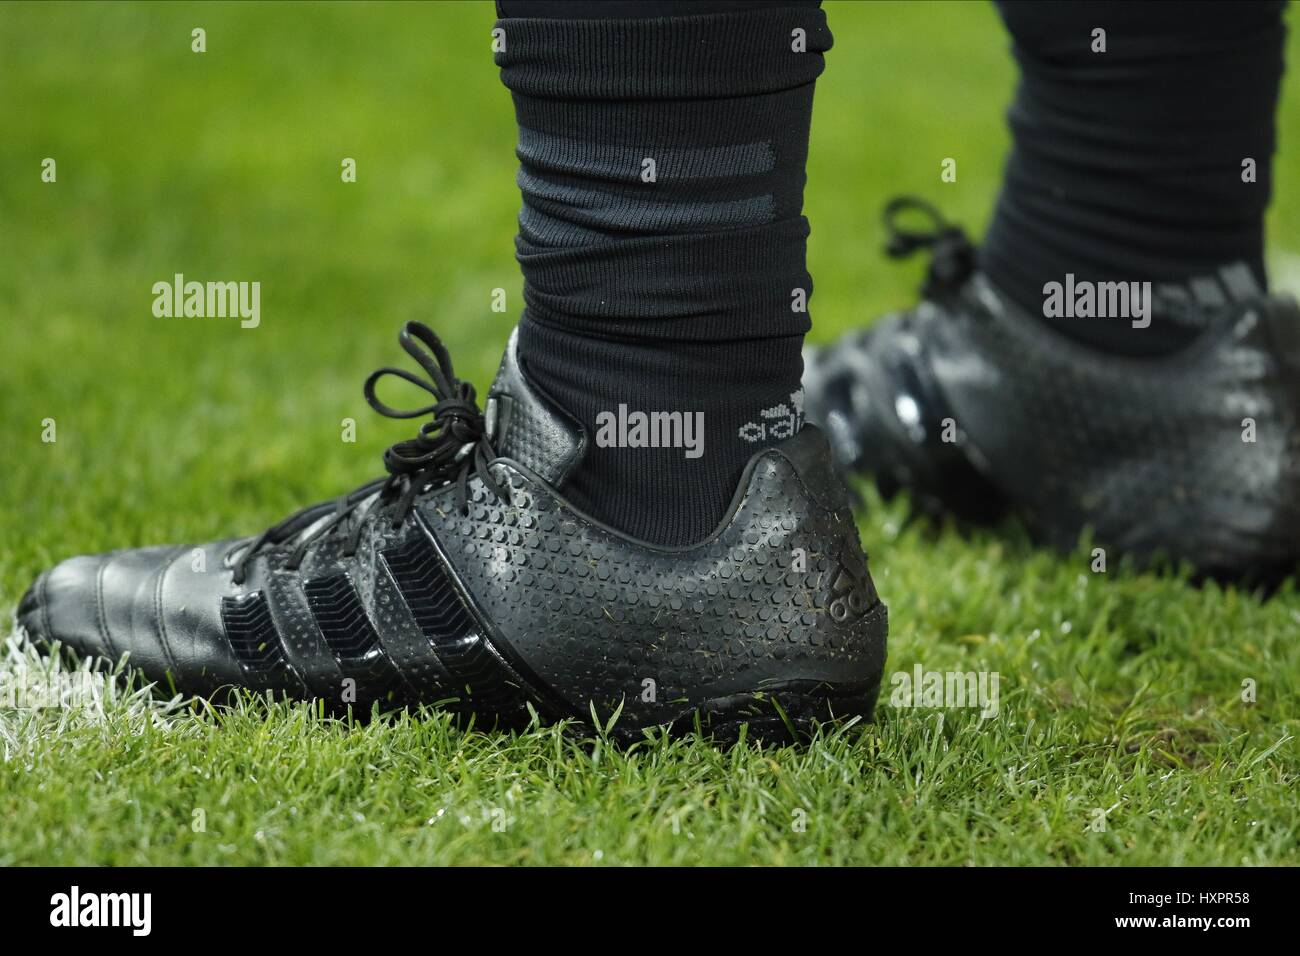 7f7f3f86e995 NEW ZEALAND ALL BLACK ADIDAS BOOTS NEW ZEALAND RU NEW ZEALAND RU ST JAMES  PARK NEWCASTLE UPON TYNE ENGLAND 09 October 2015